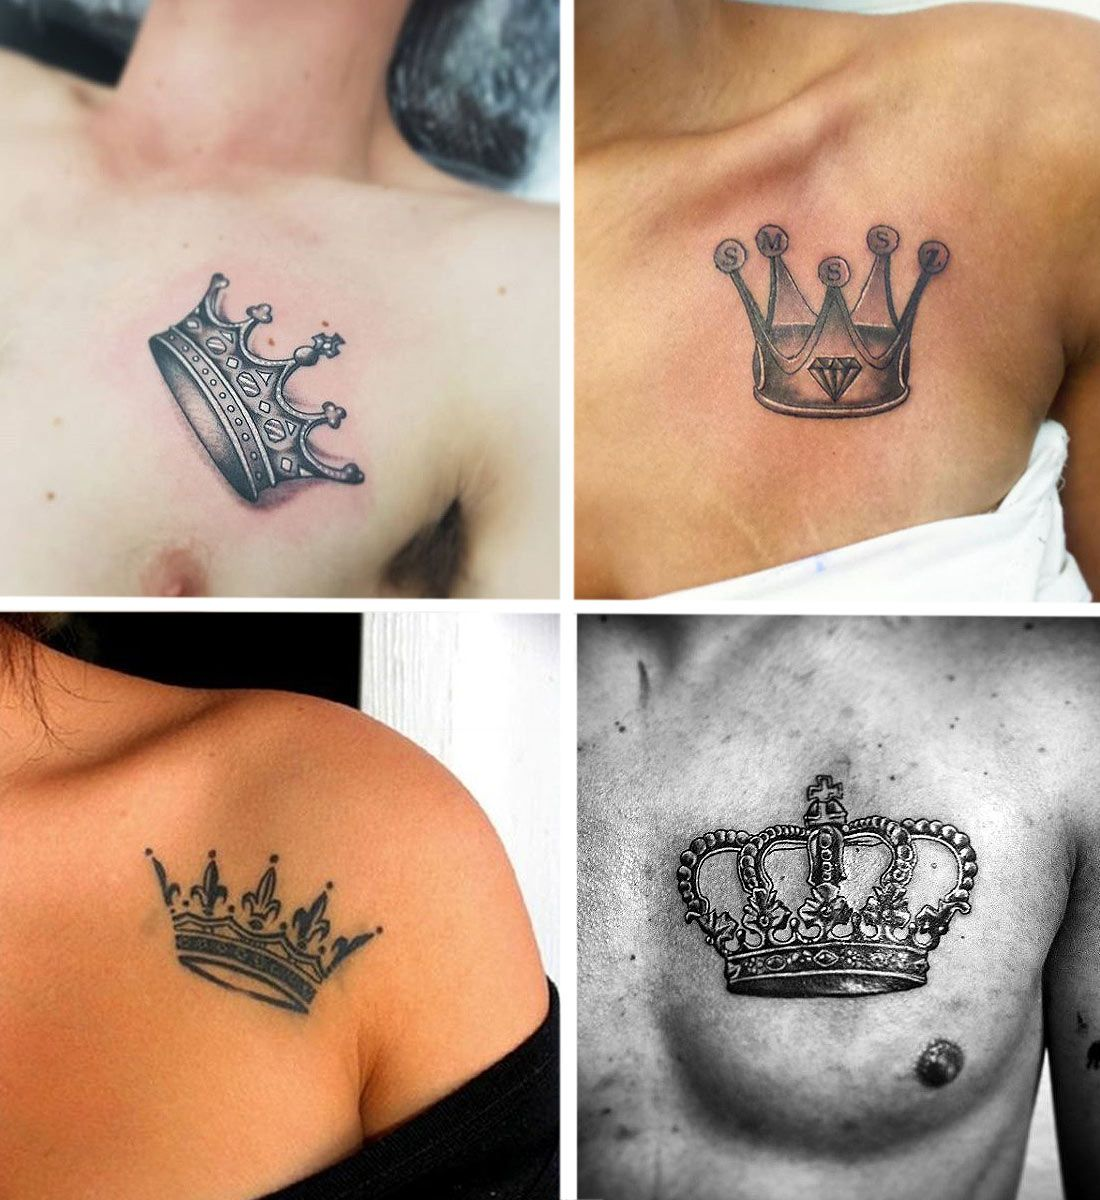 King And Queen Tattoos Best Couple Tattoo Ideas Crown Tattoos For Women Crown Tattoo Queen Crown Tattoo